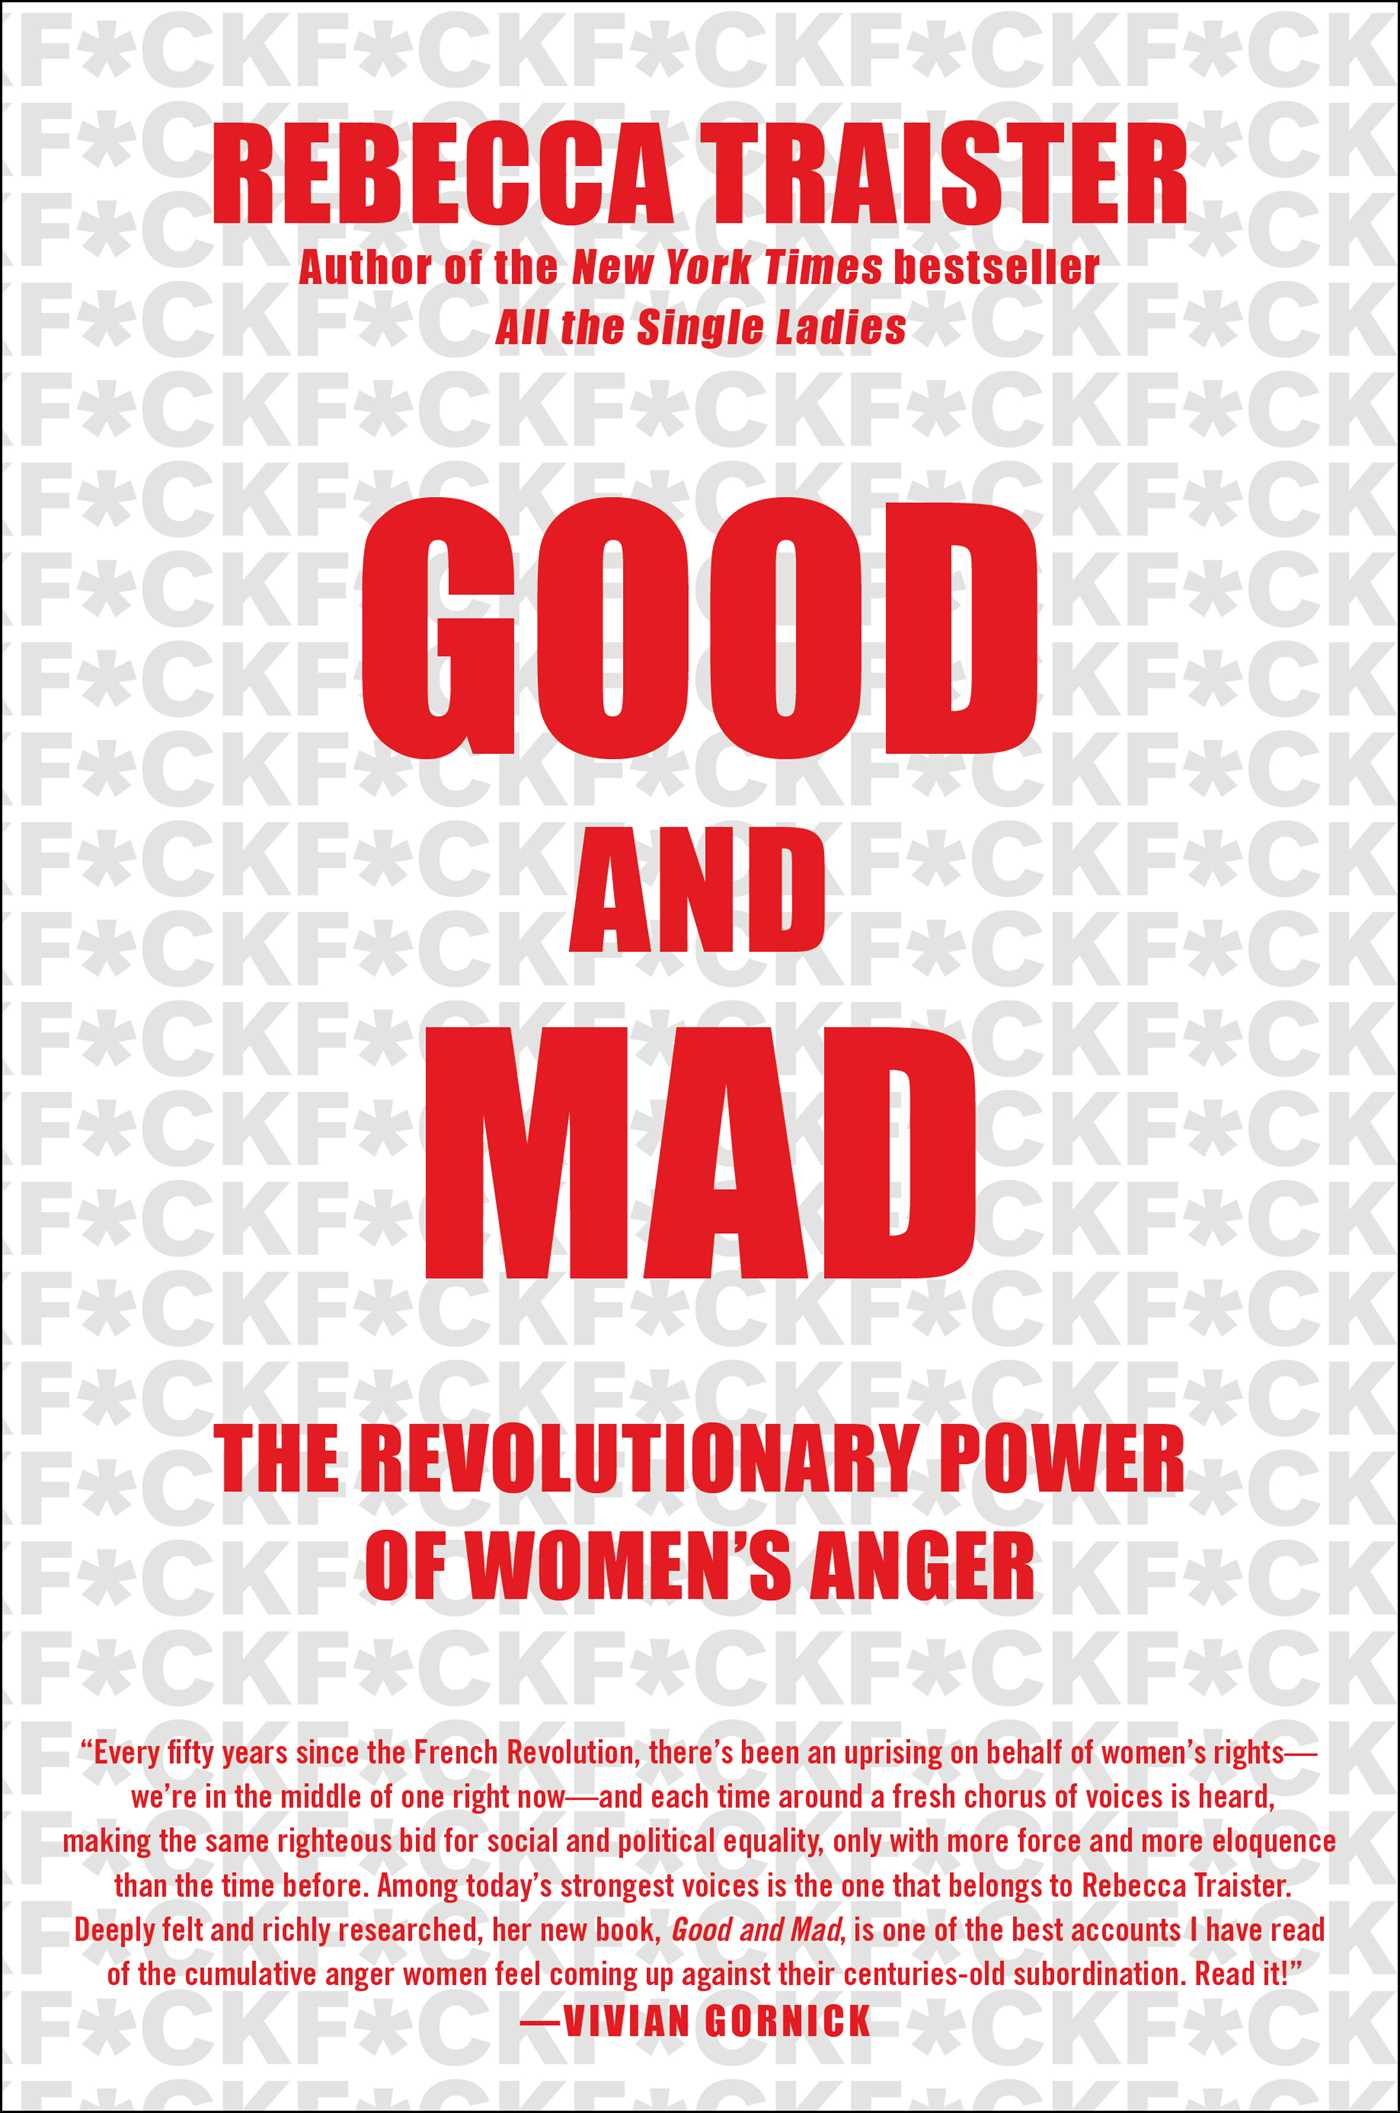 The cover of the book Good and Mad